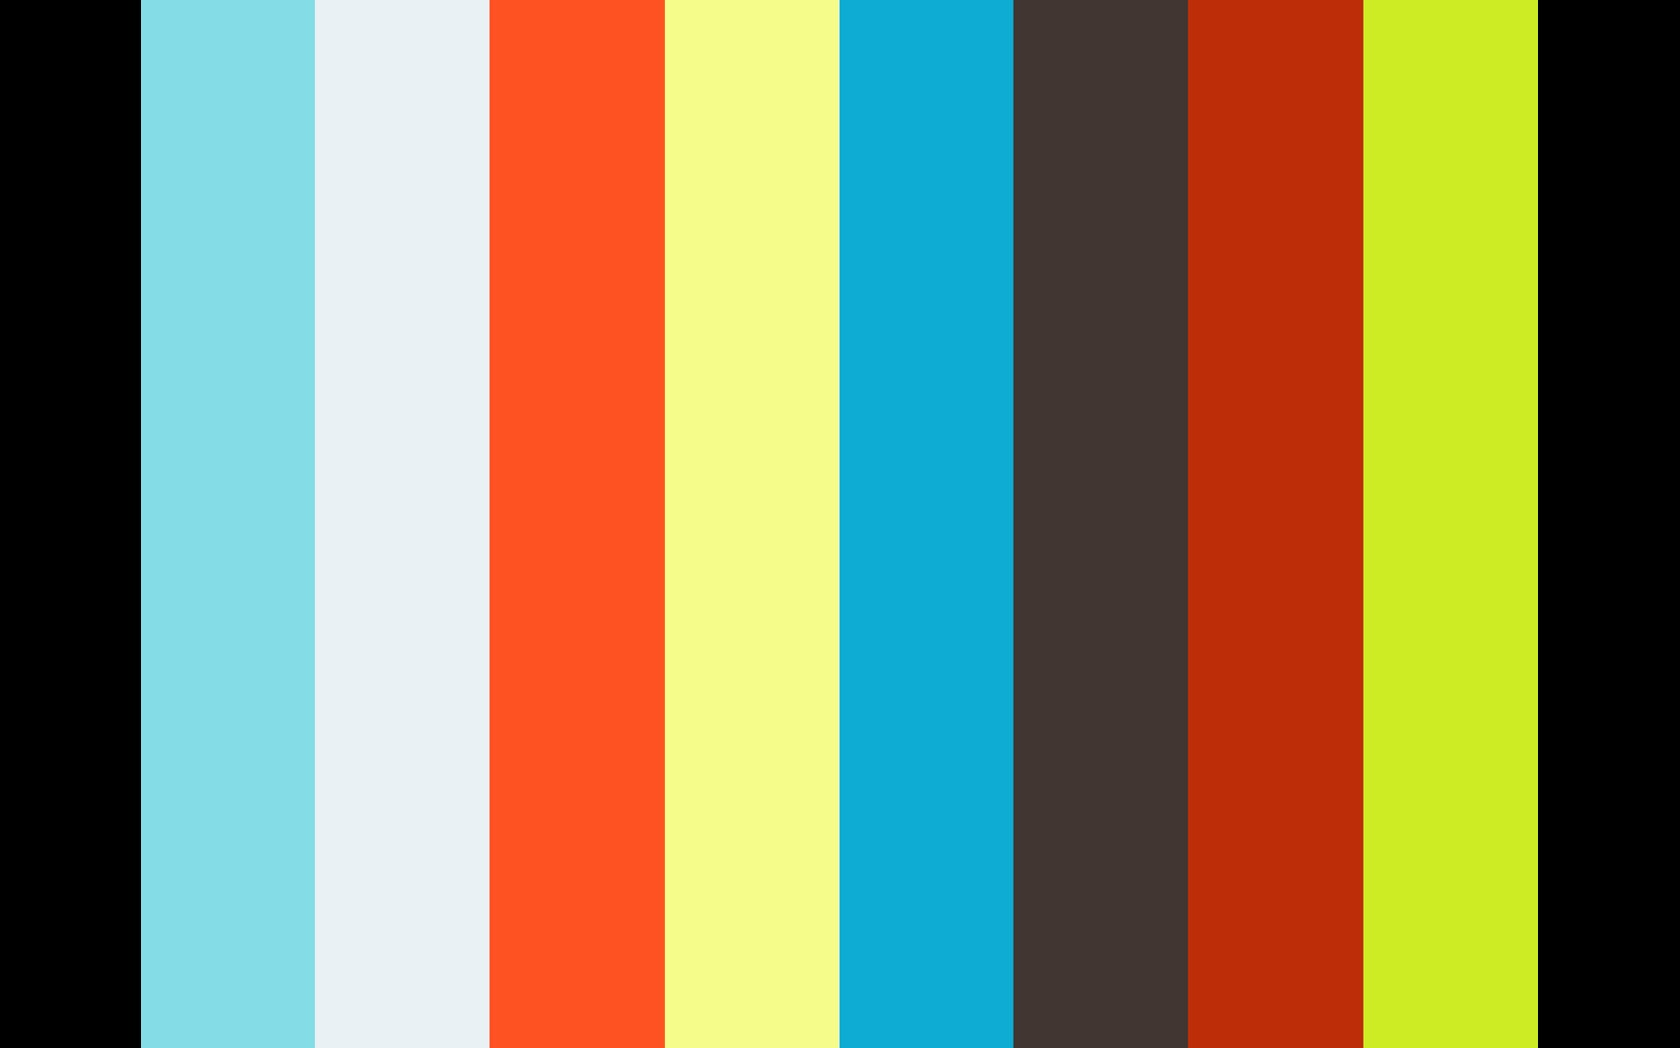 Mill-Turn workflow specifics